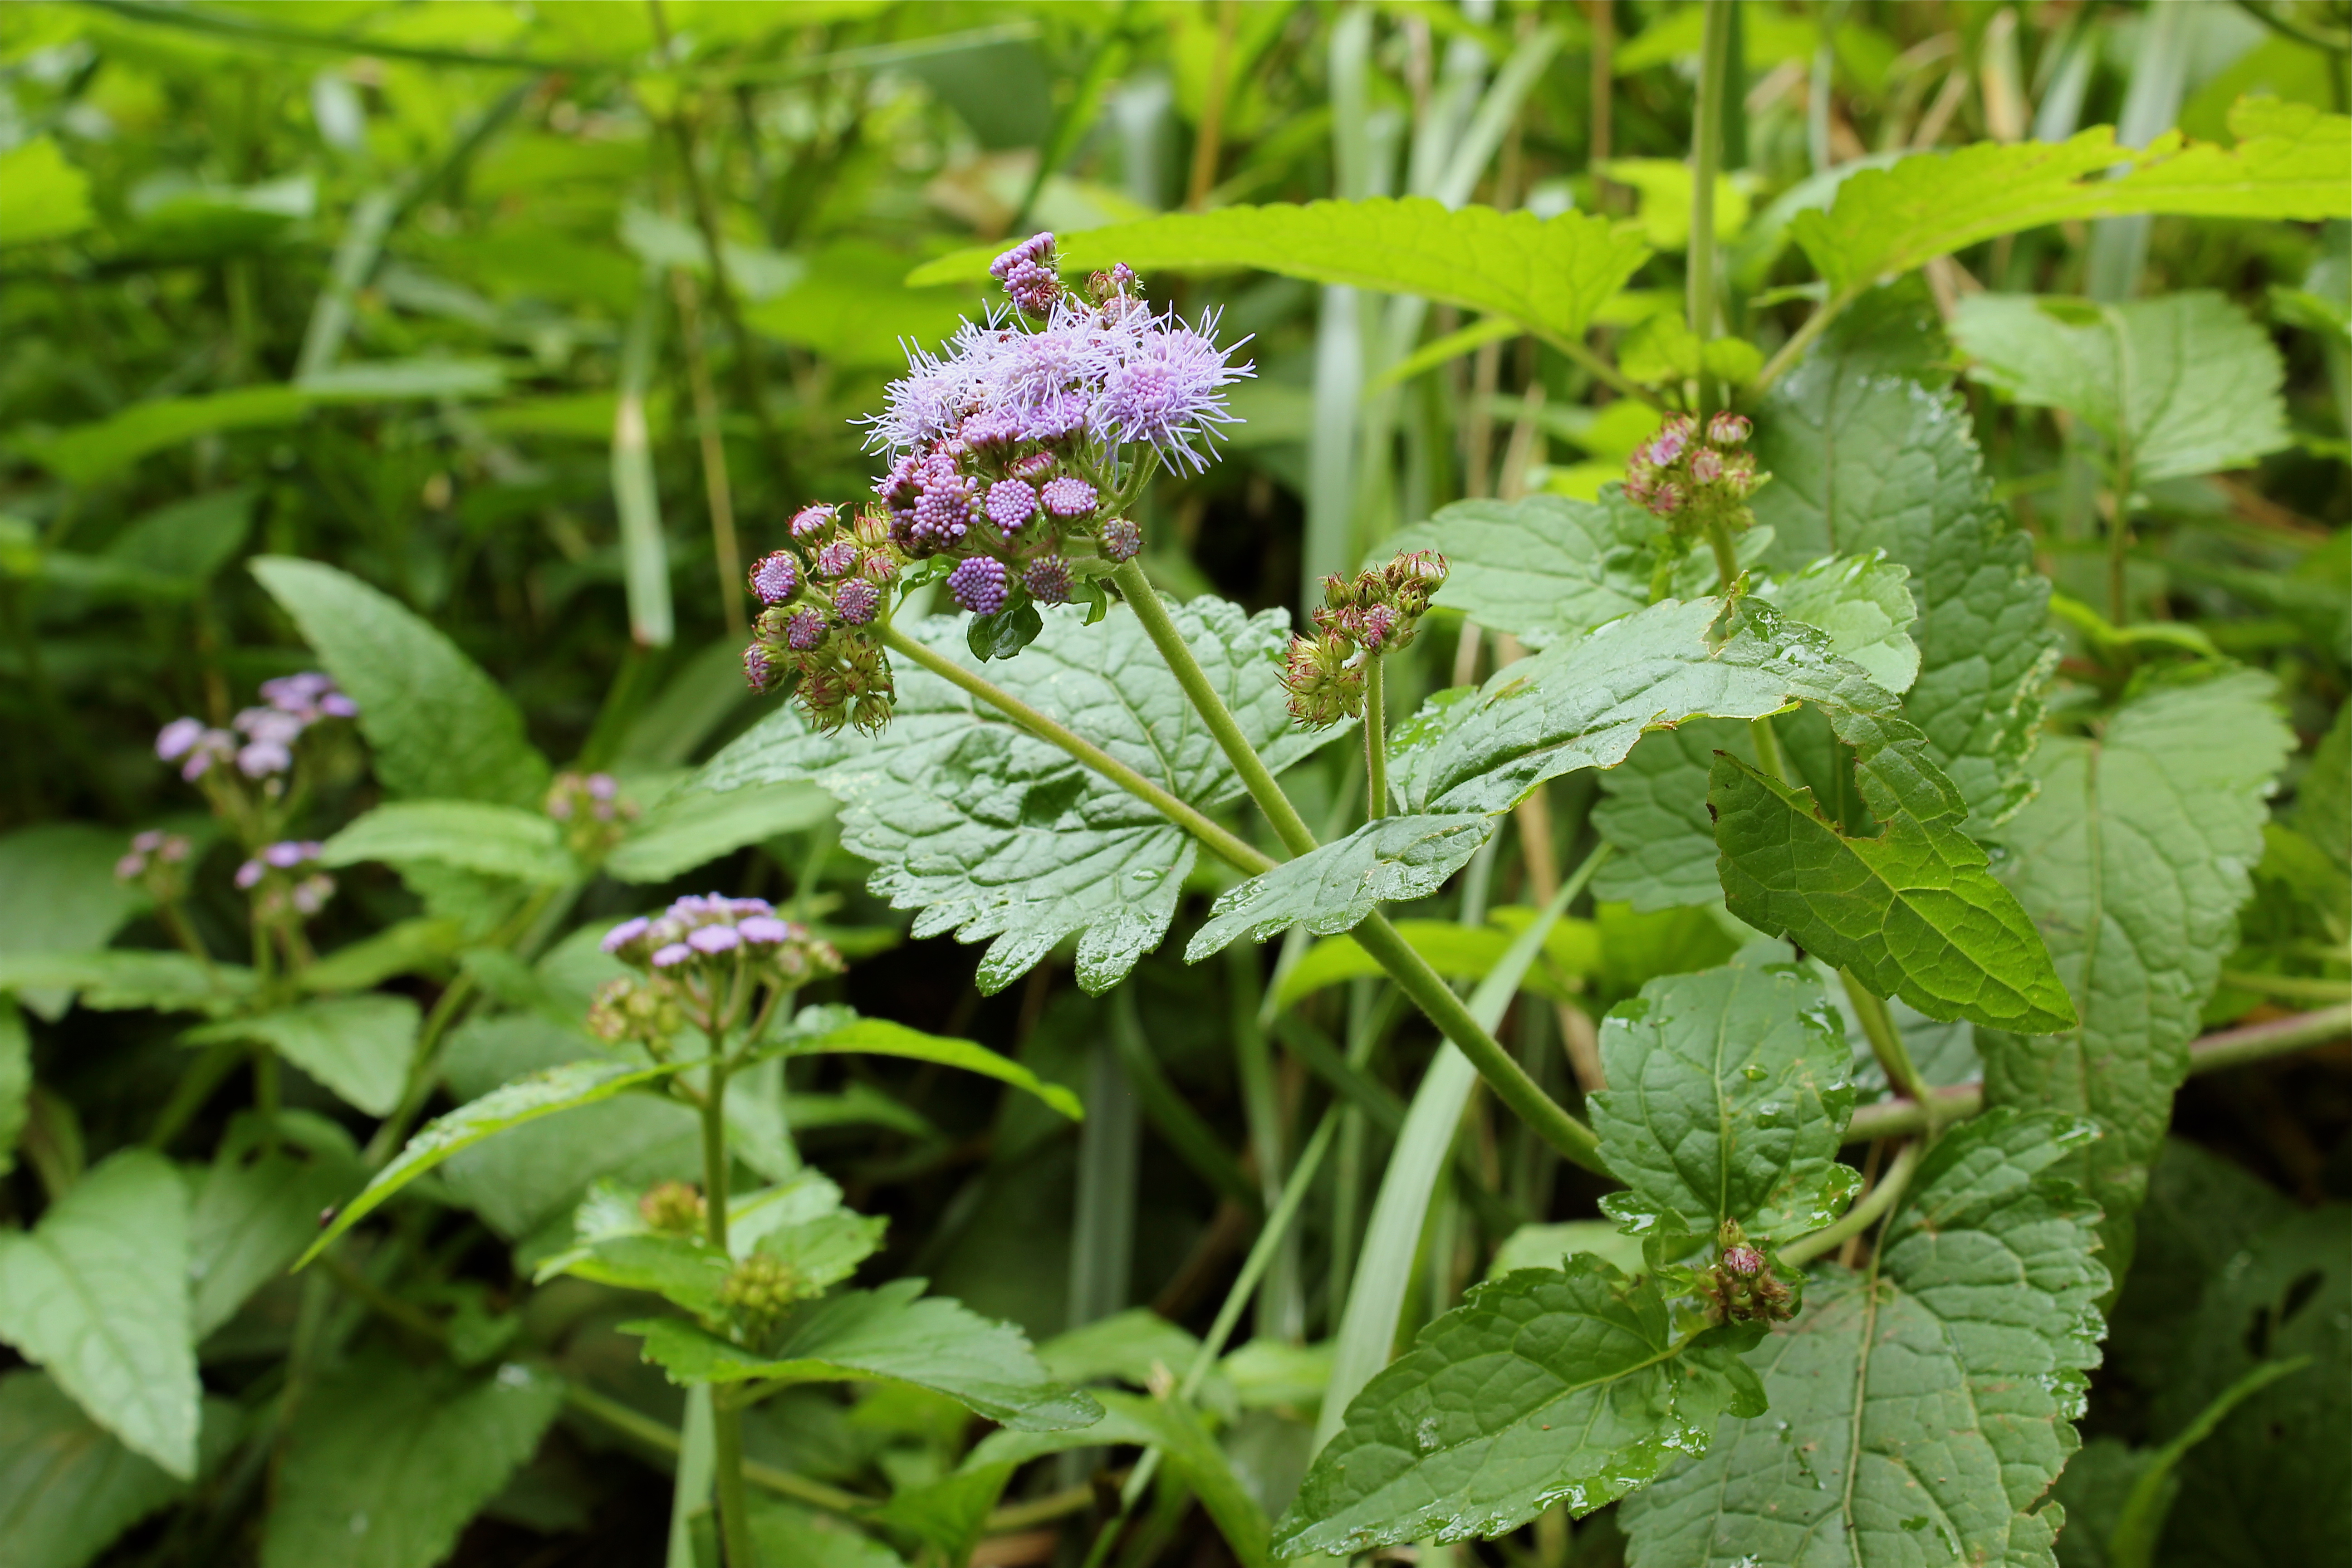 Blue mist flower or wild ageratum virginia wildflowers blue mist flower or wild ageratum izmirmasajfo